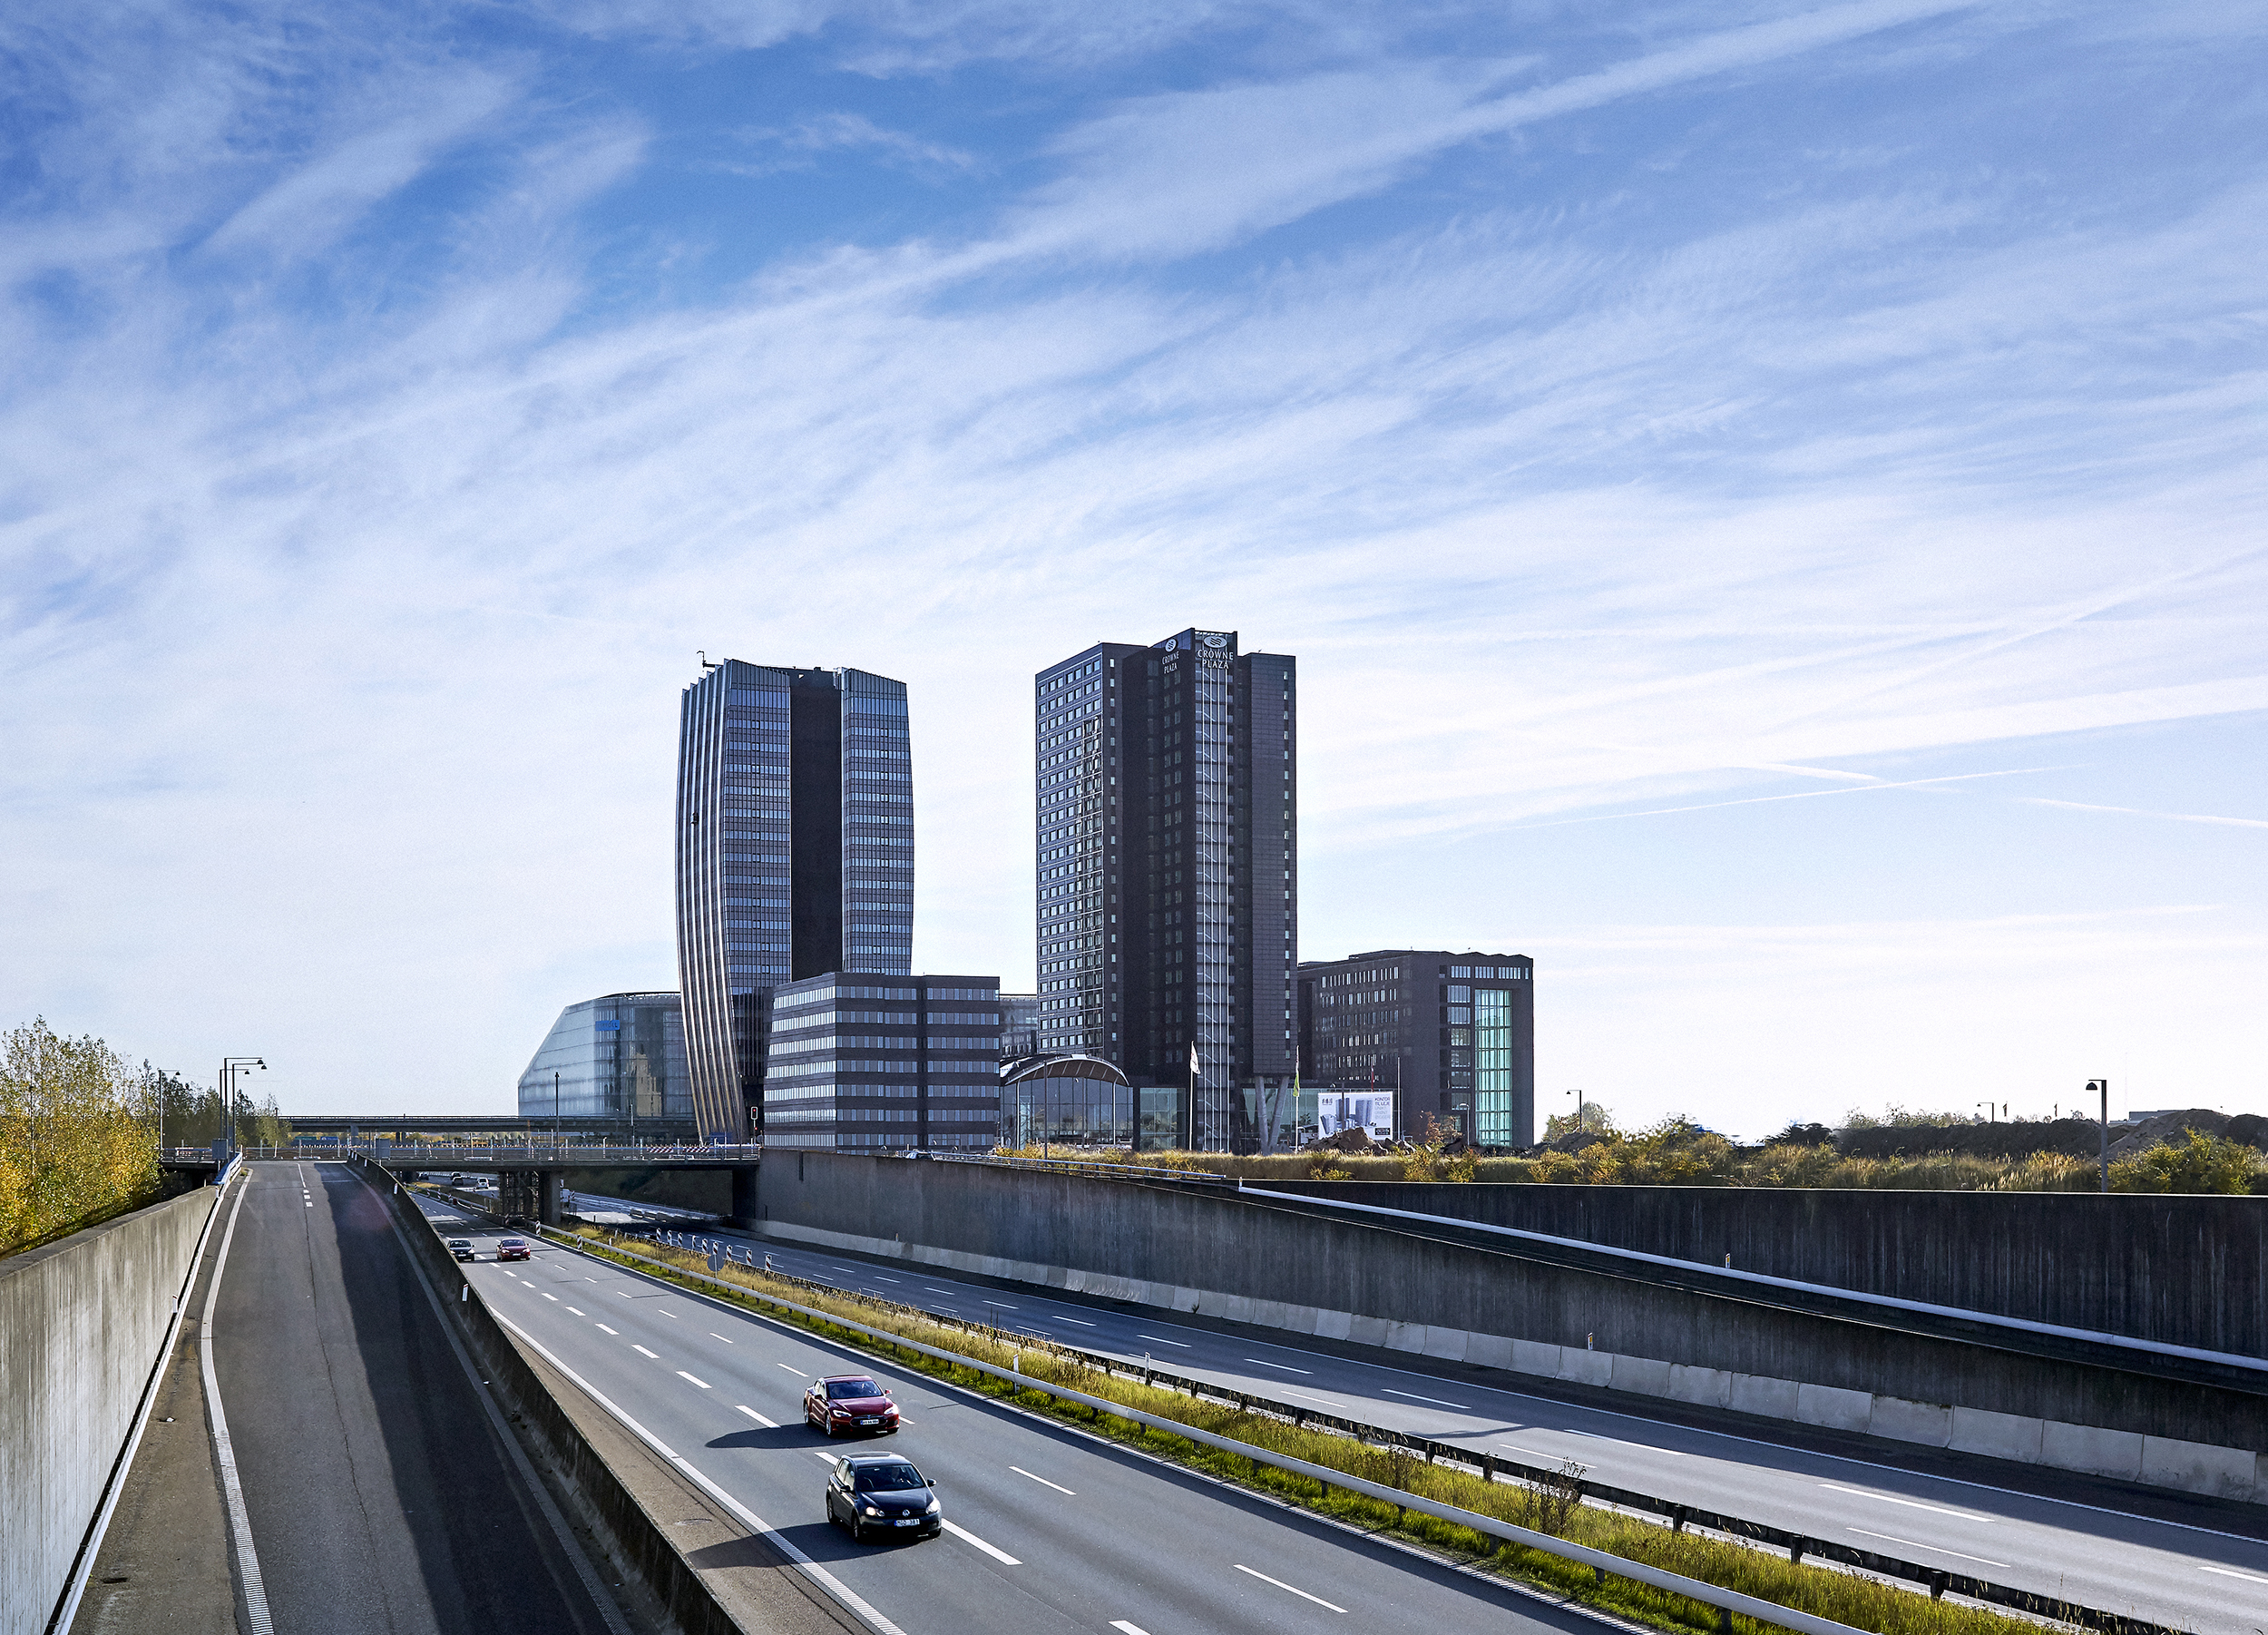 dissing-weitling-crowne-plaza-cph-towers-lores.jpg